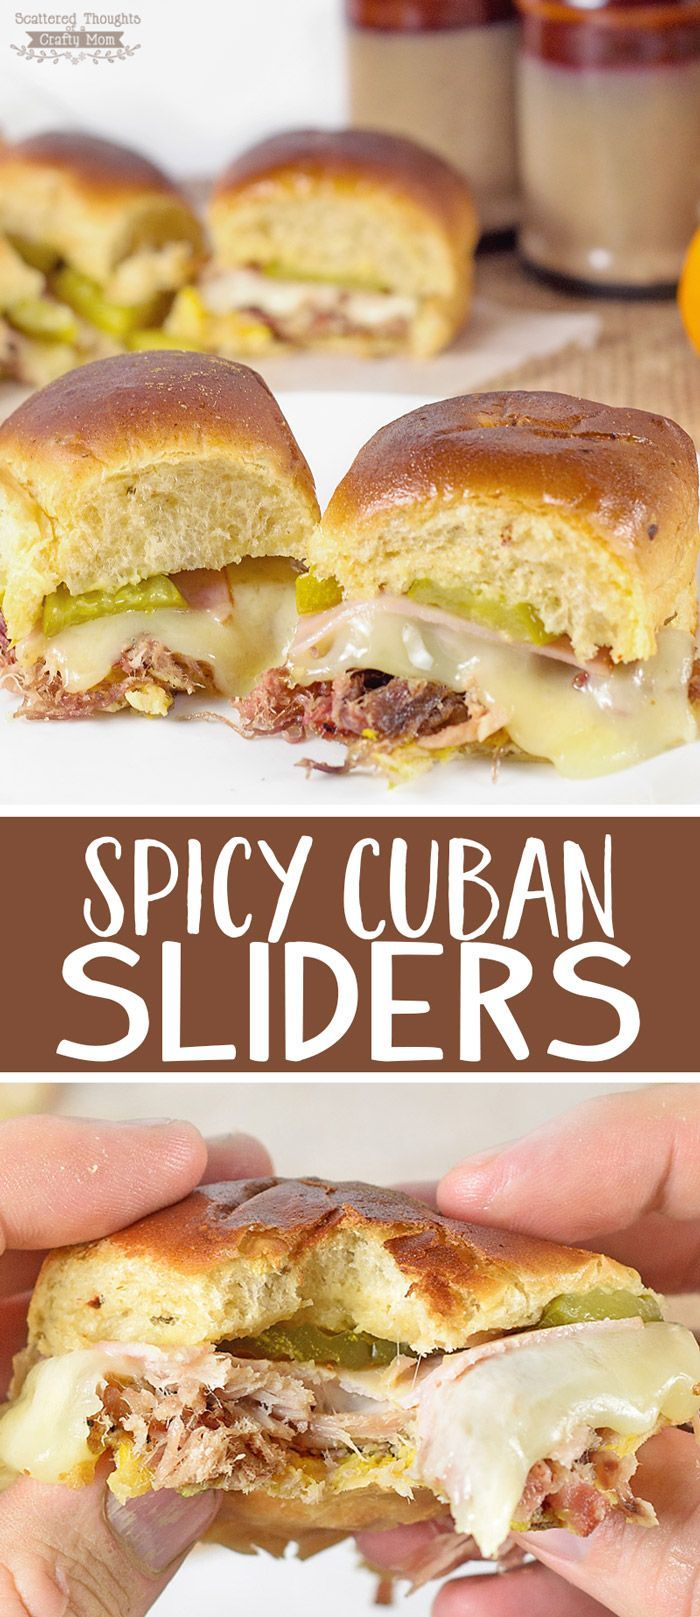 ... Sliders,Wraps & Dogs on Pinterest | Grilled cheeses, Burgers and